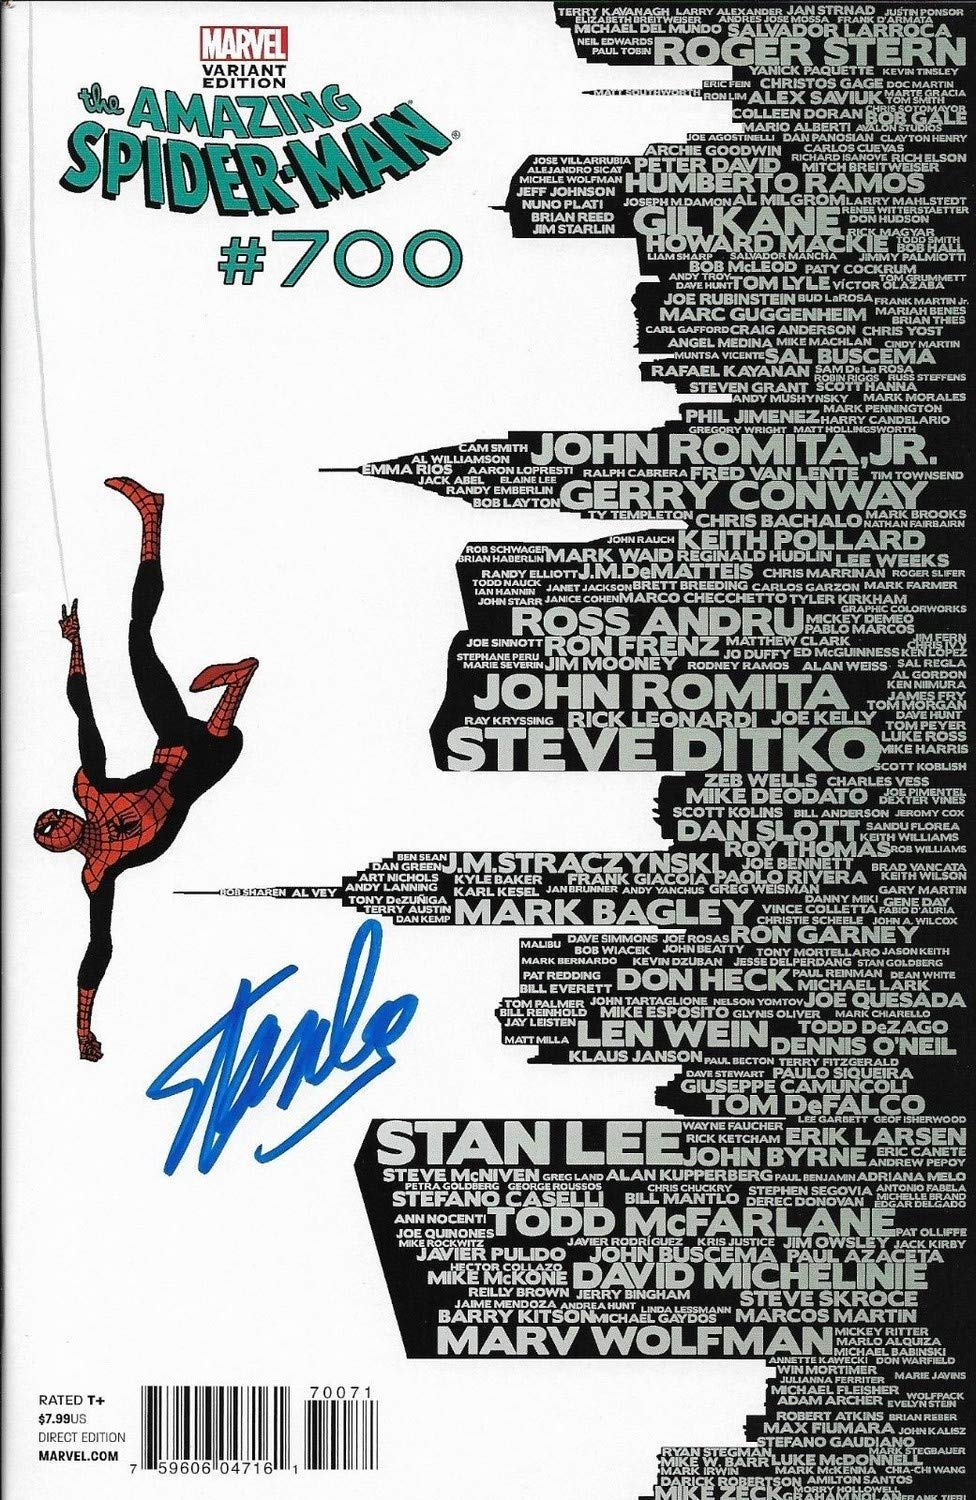 Stan Lee Autographed Signed Amazing Spider Man Autographed Signed #700 Variant Edition Comic Book JSA Authentic